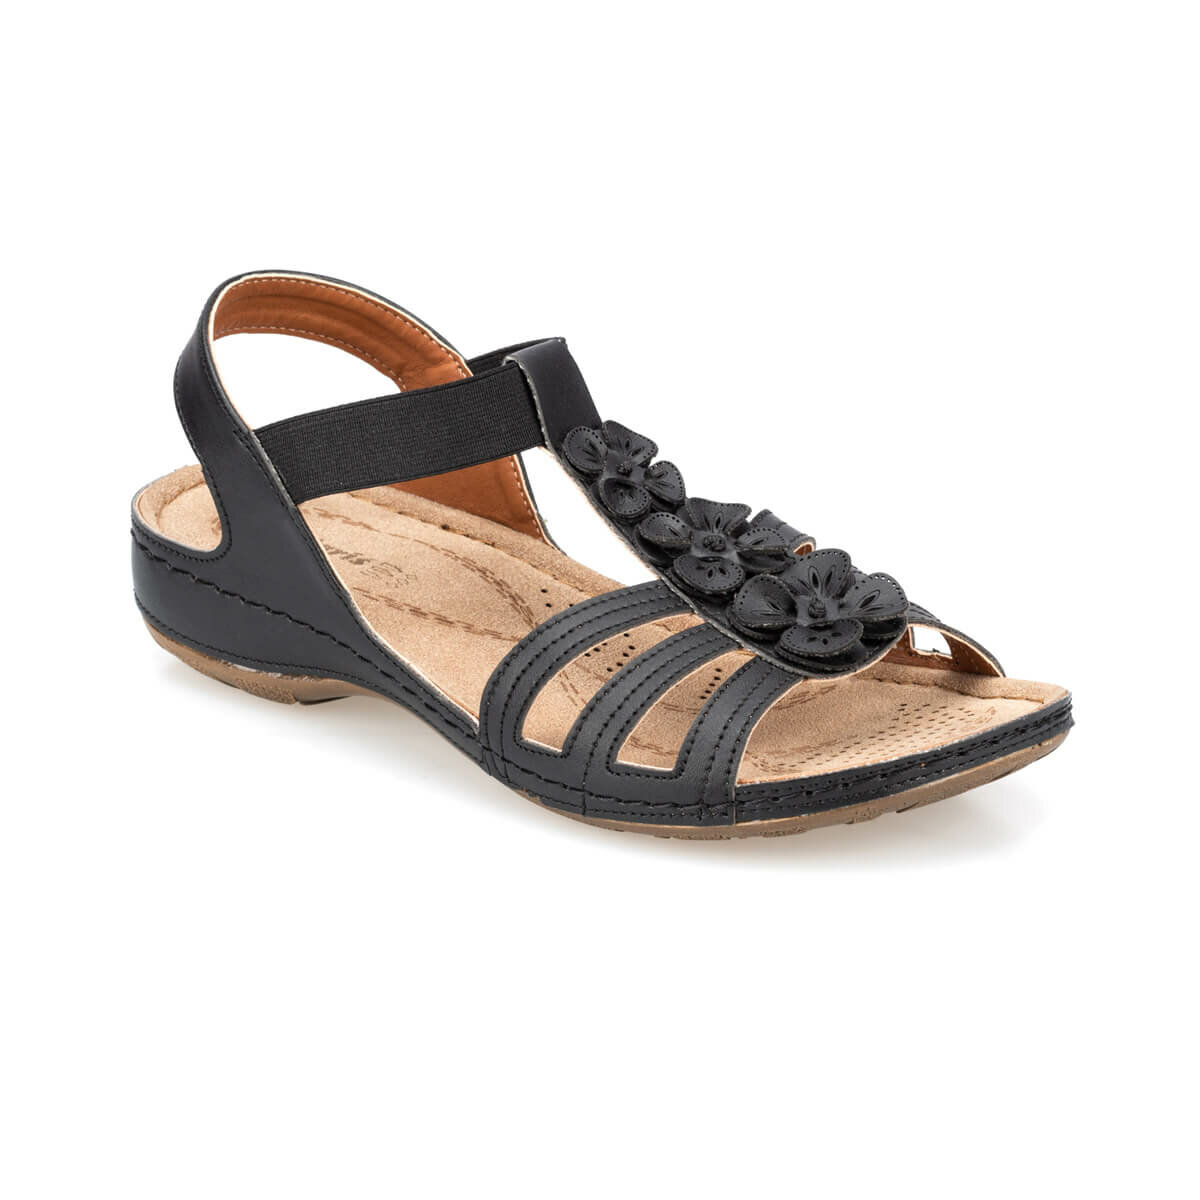 FLO 91.157362.Z Black Women Sandals Polaris